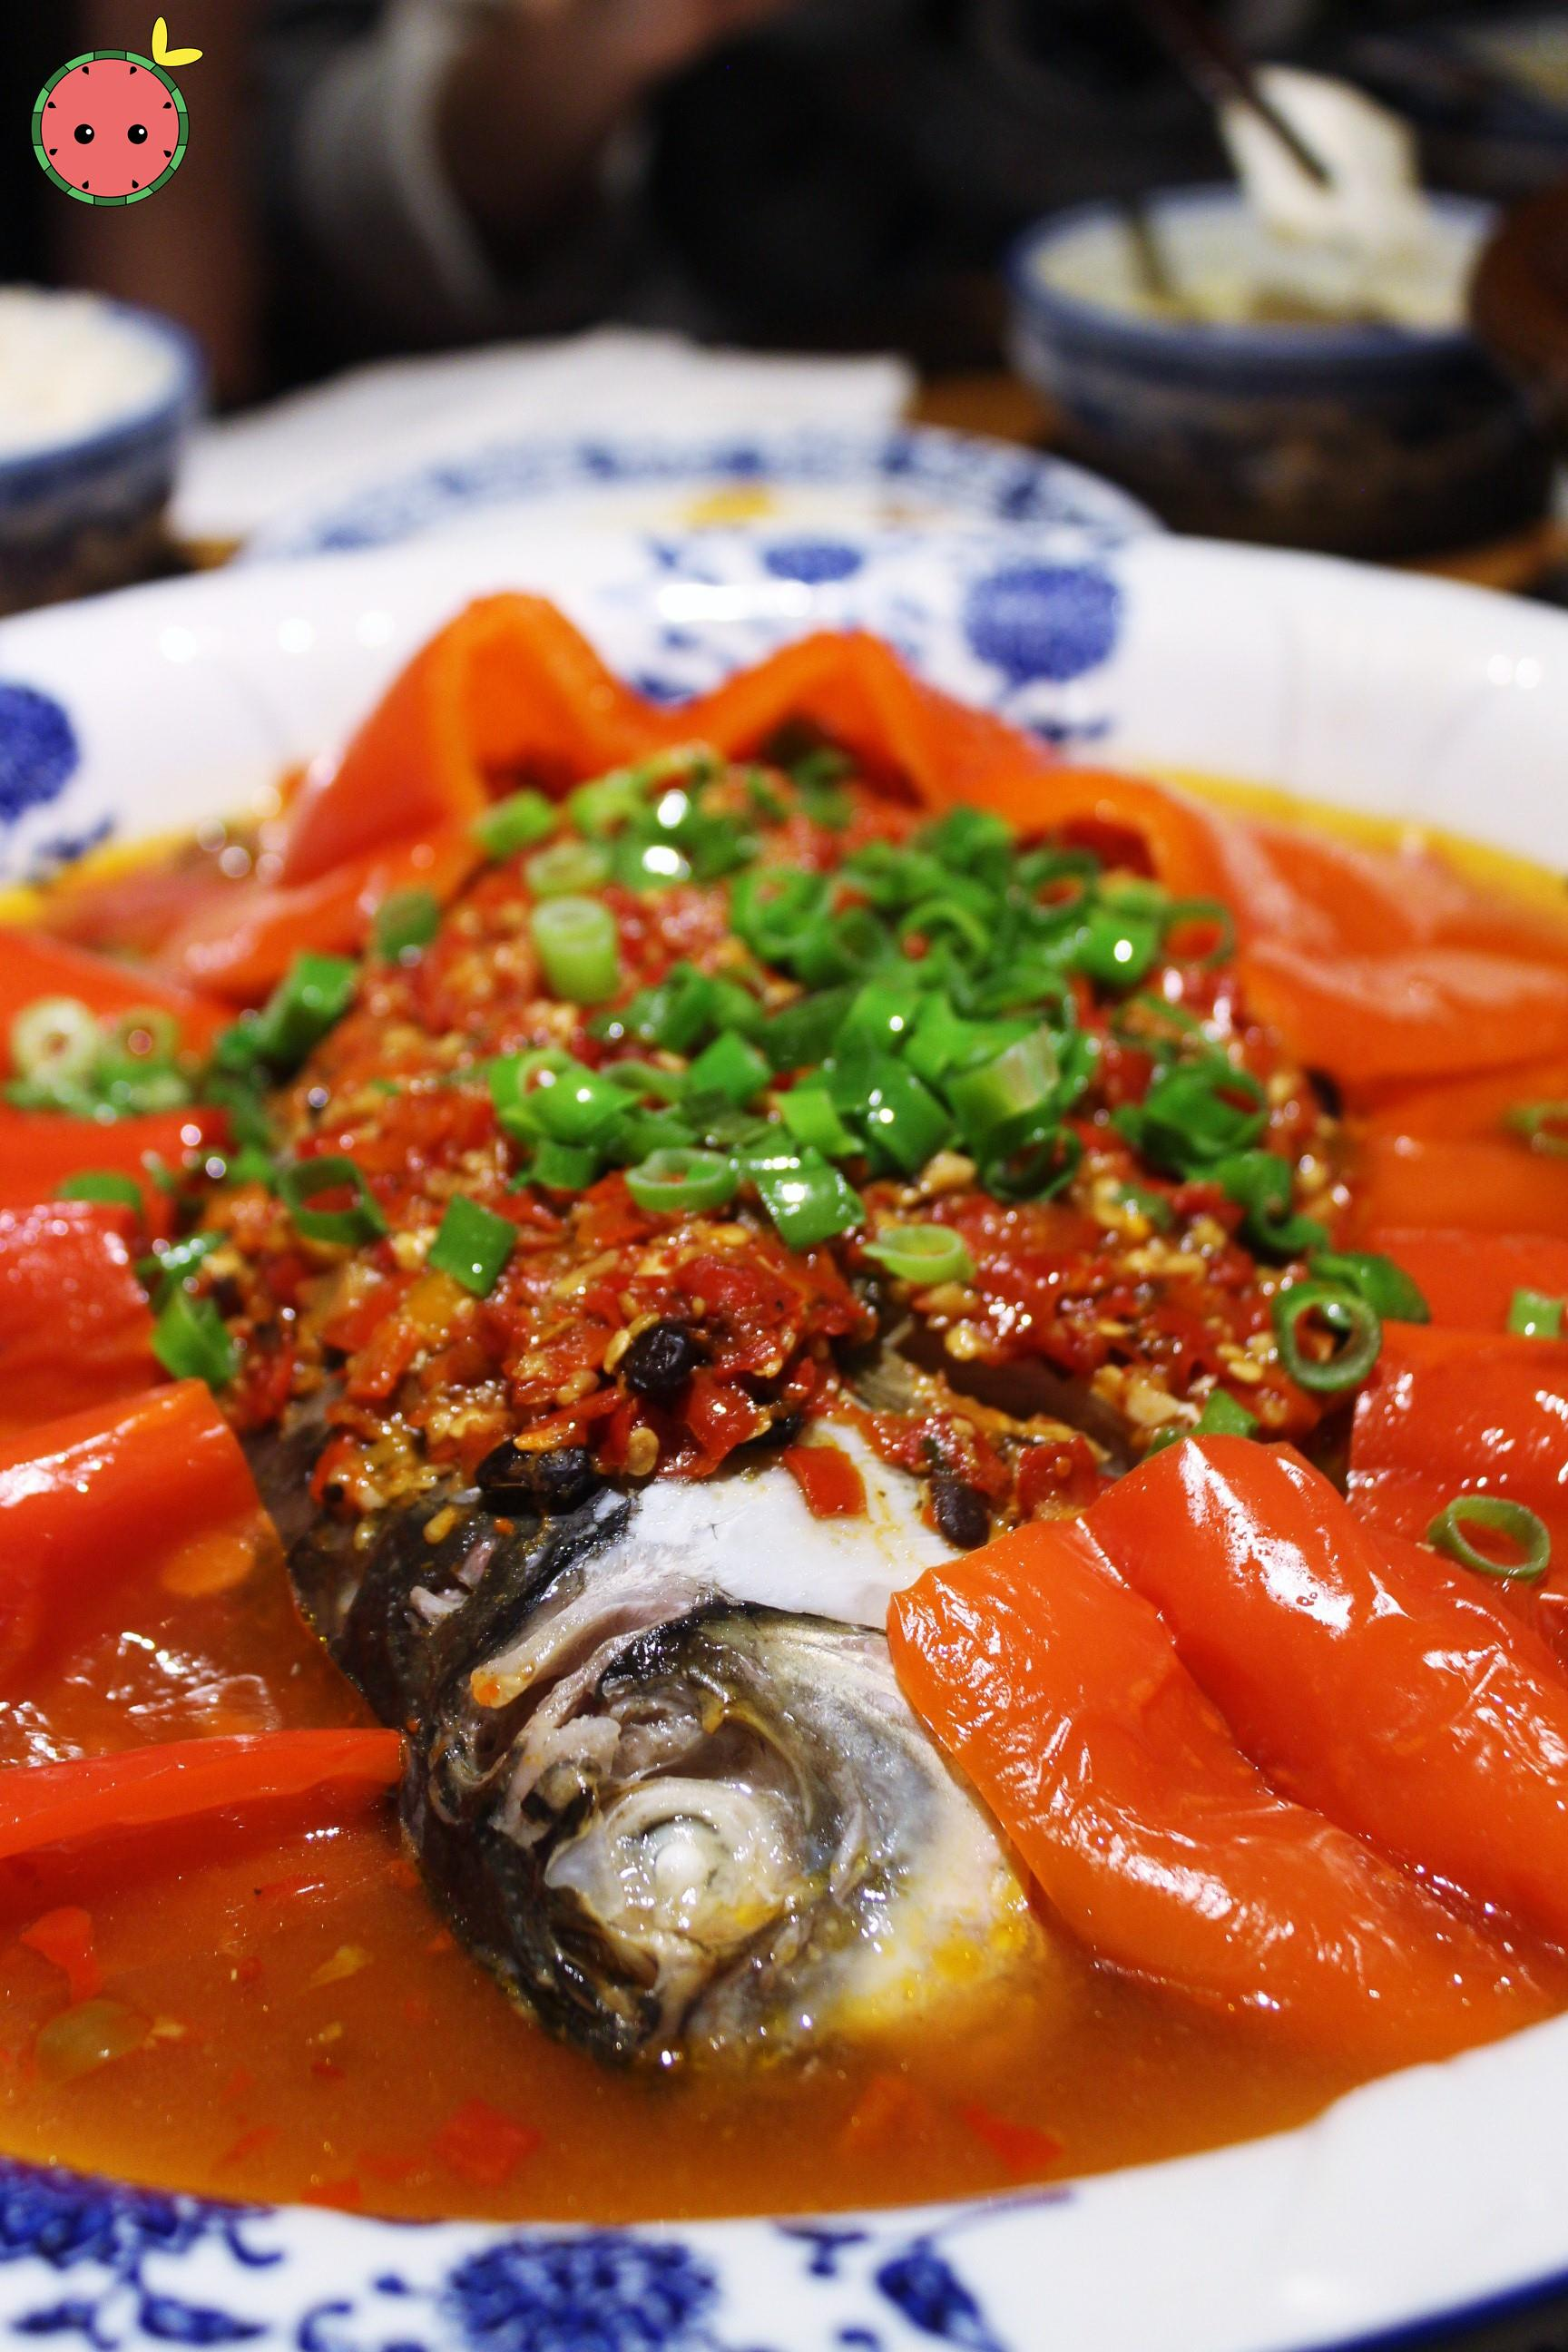 Braised Fish Head with Pickled Chili